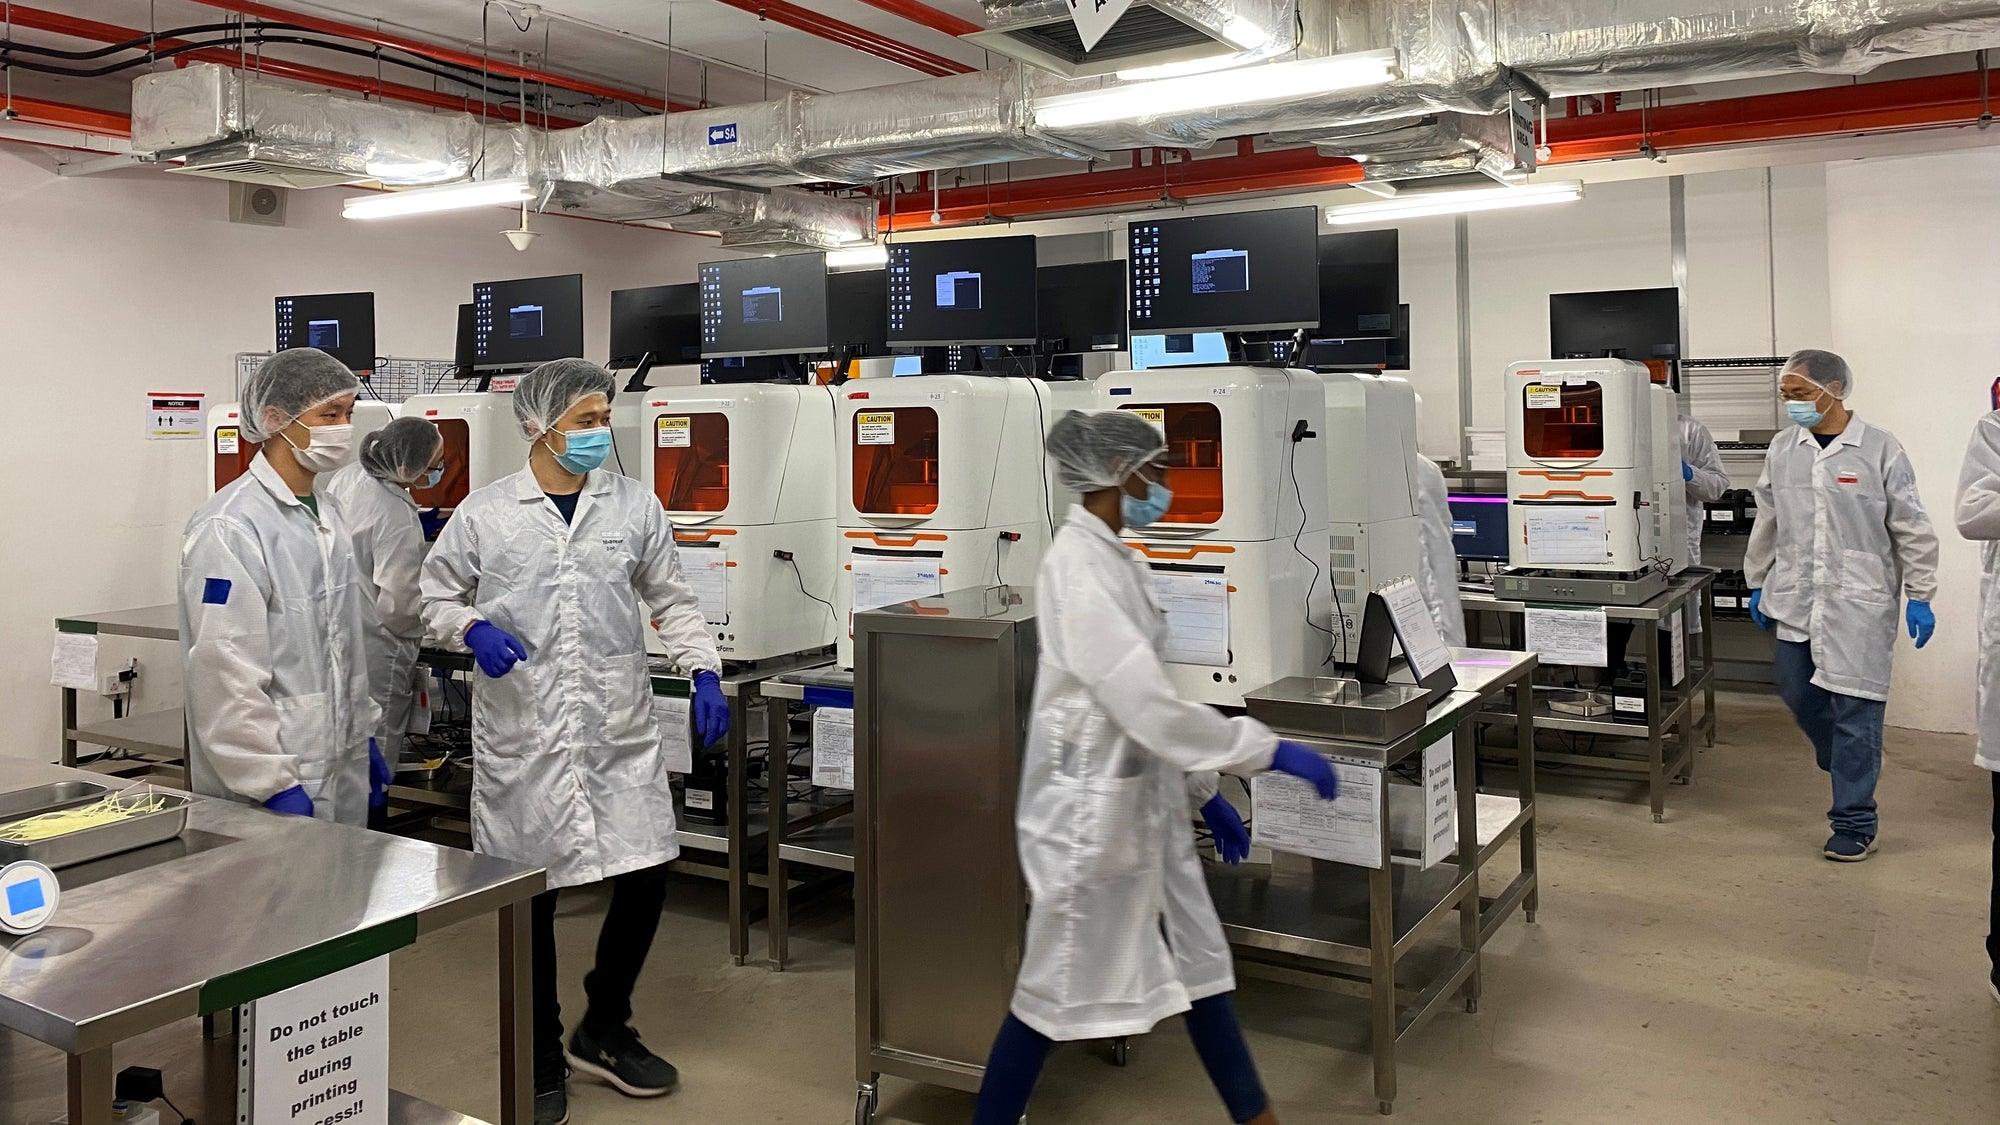 Singapore-based 3D printing startup, Structo, starts production of millions of sterilized nasopharyngeal testing swabs